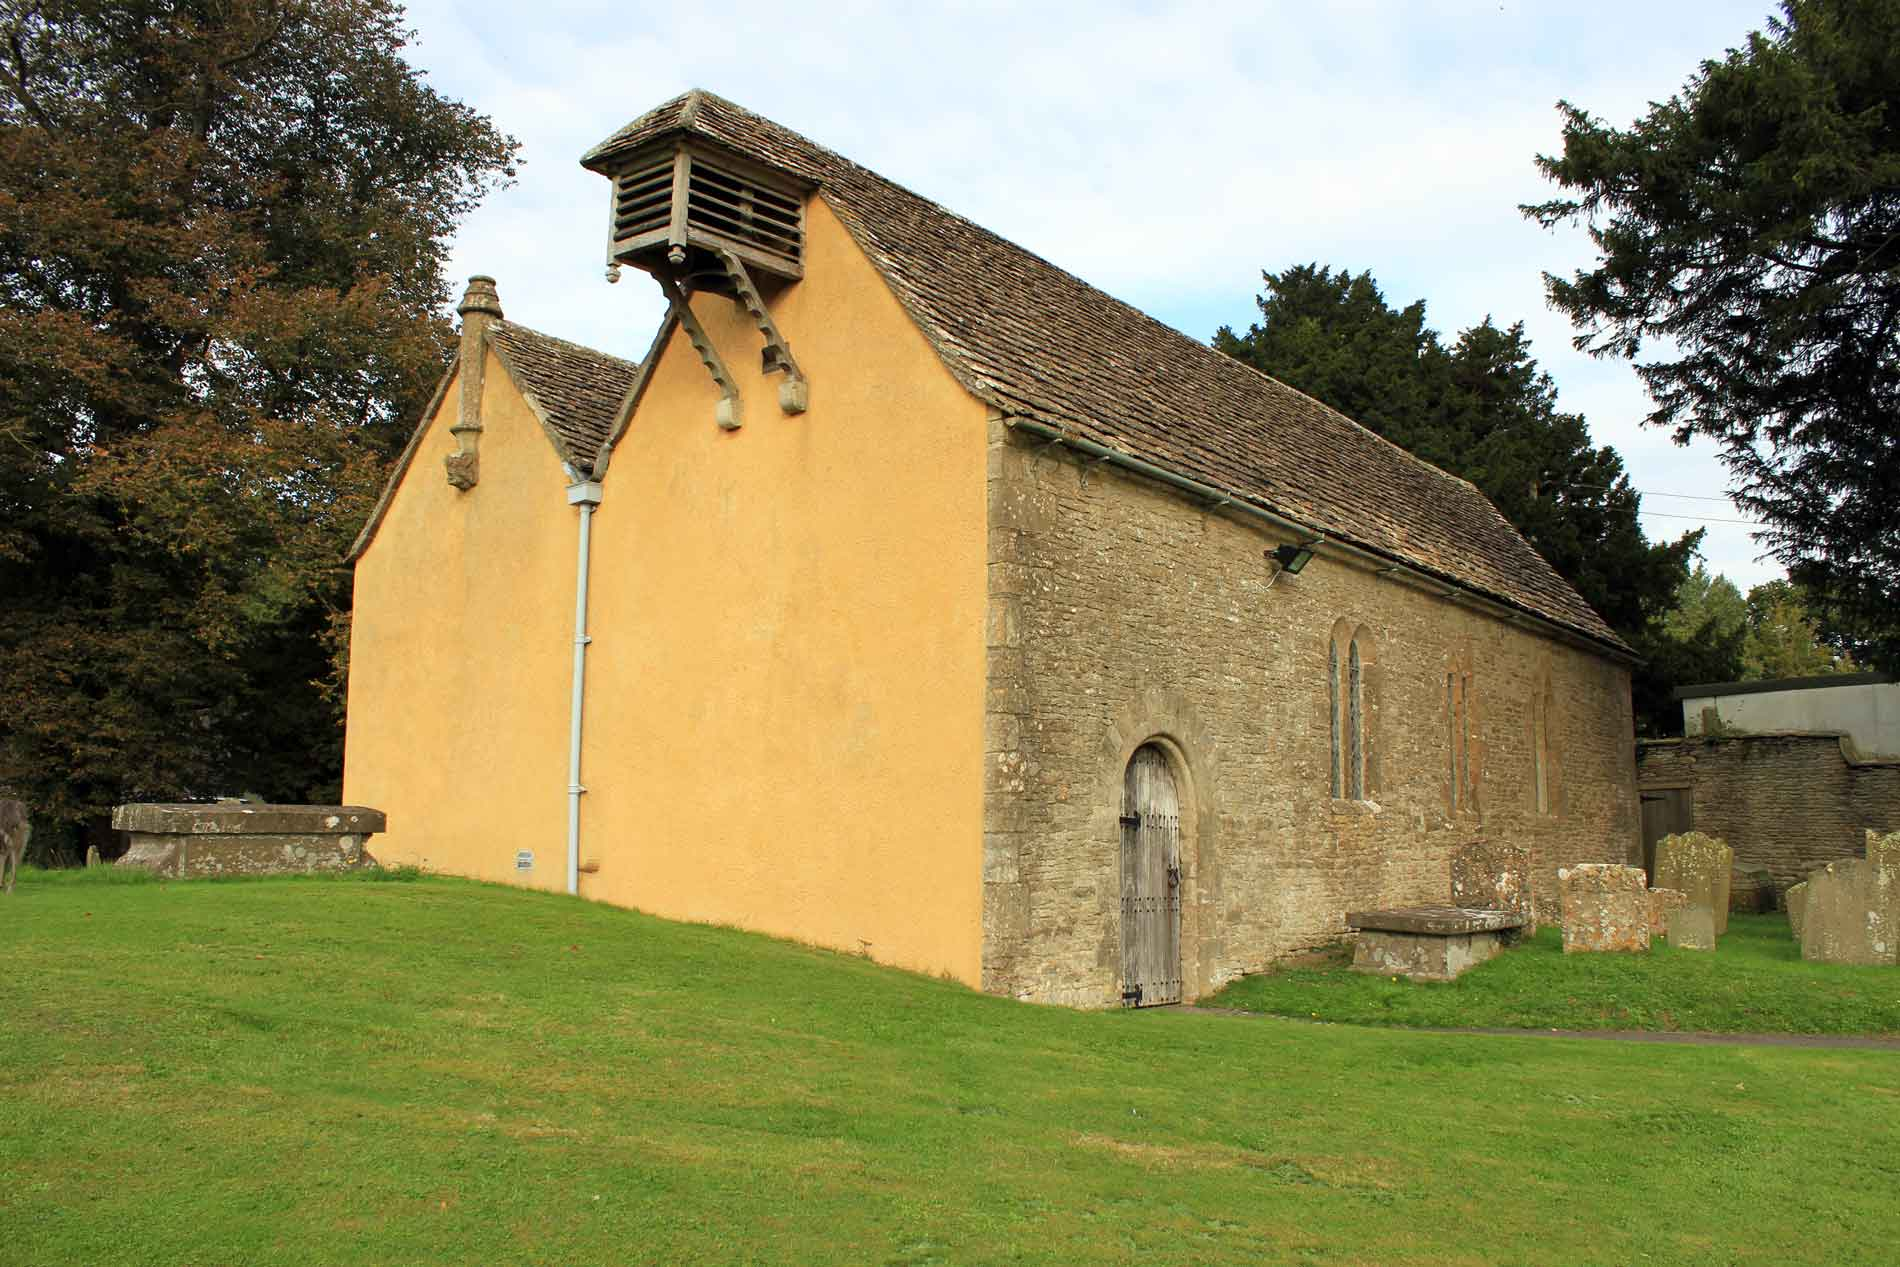 South-West View of Little Badminton Church